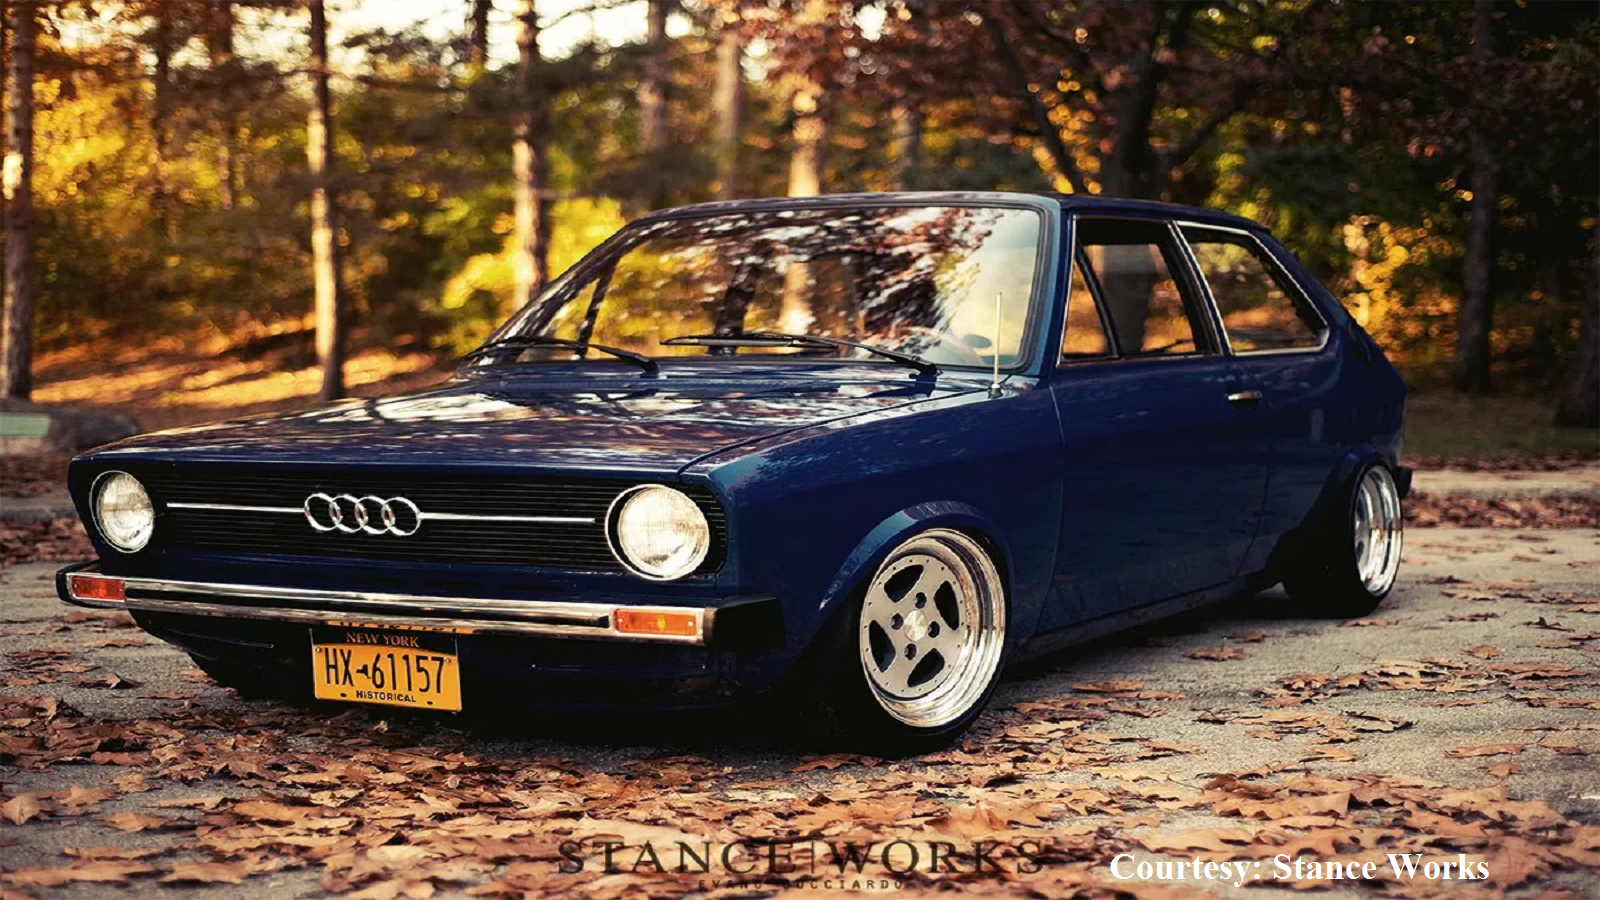 10 facts about the audi 50  3 and the vw golf